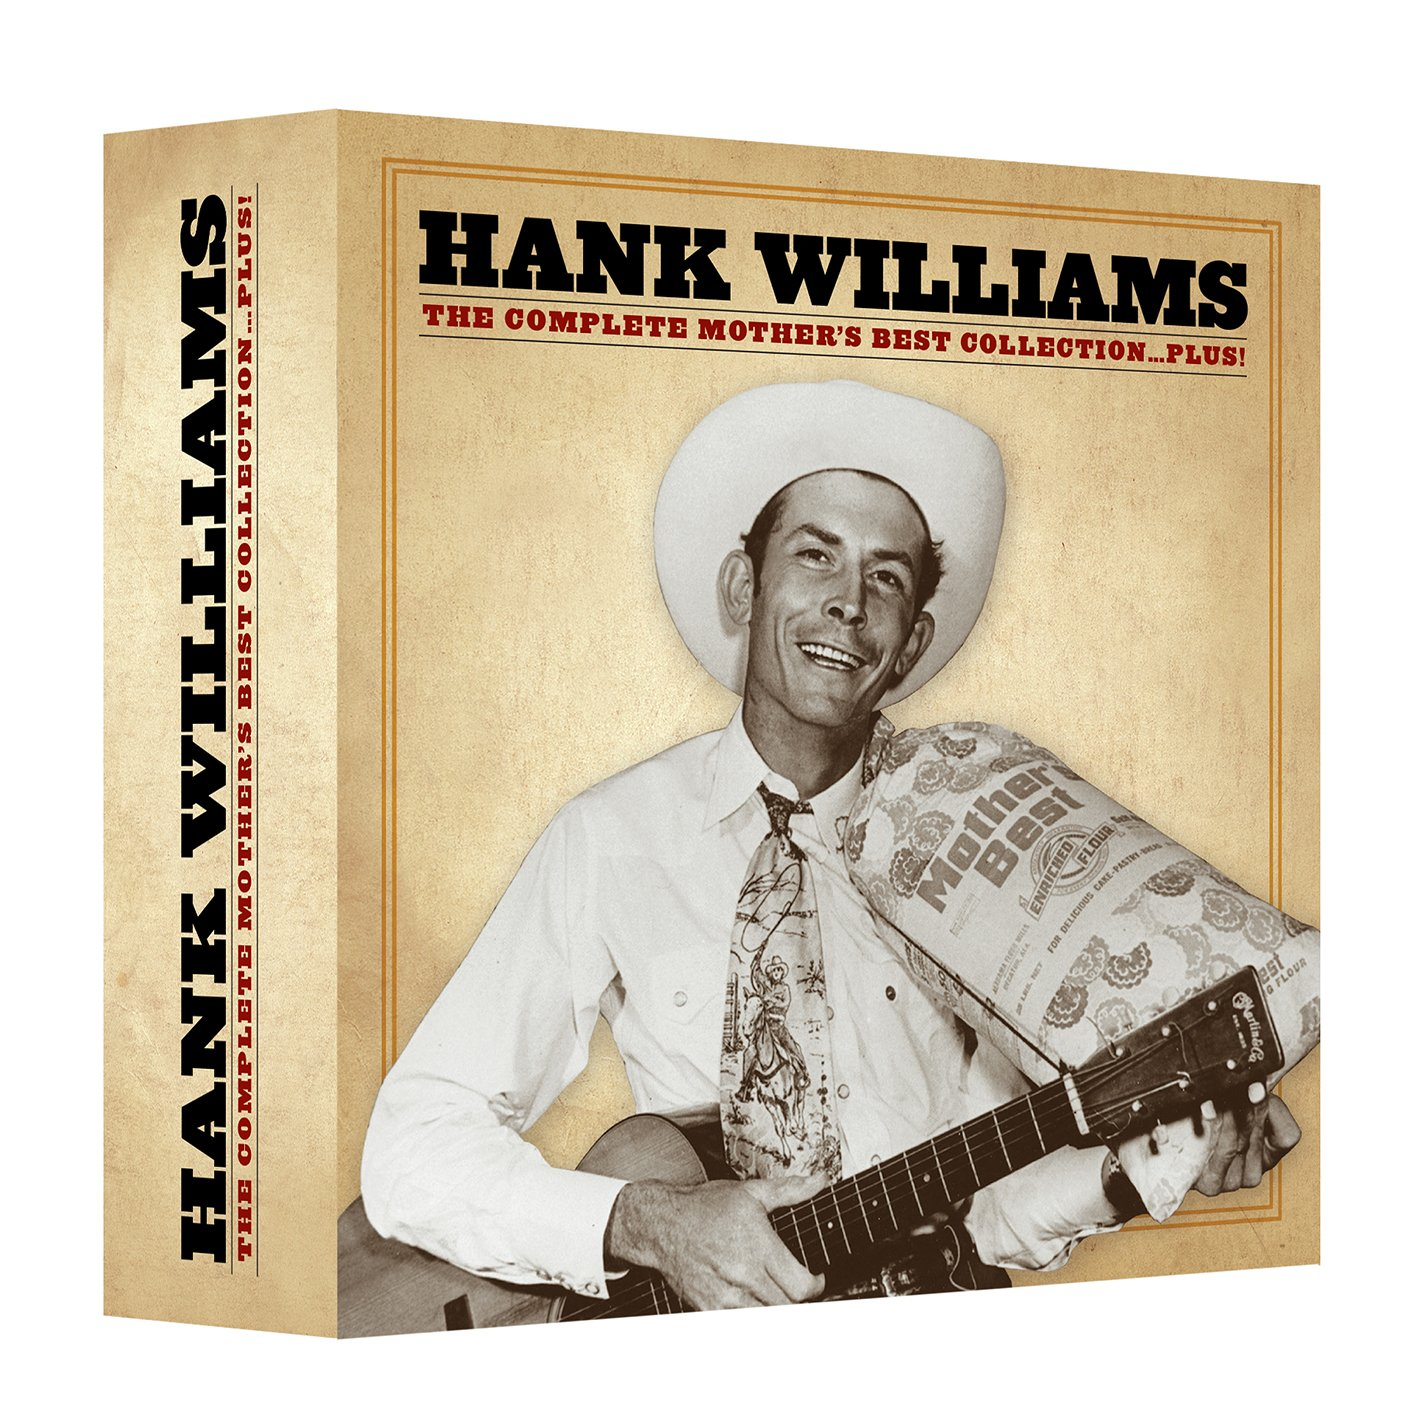 Hank Williams: Mother's Best Plus Collection (15CD/1DVD) by Time Life/WEA